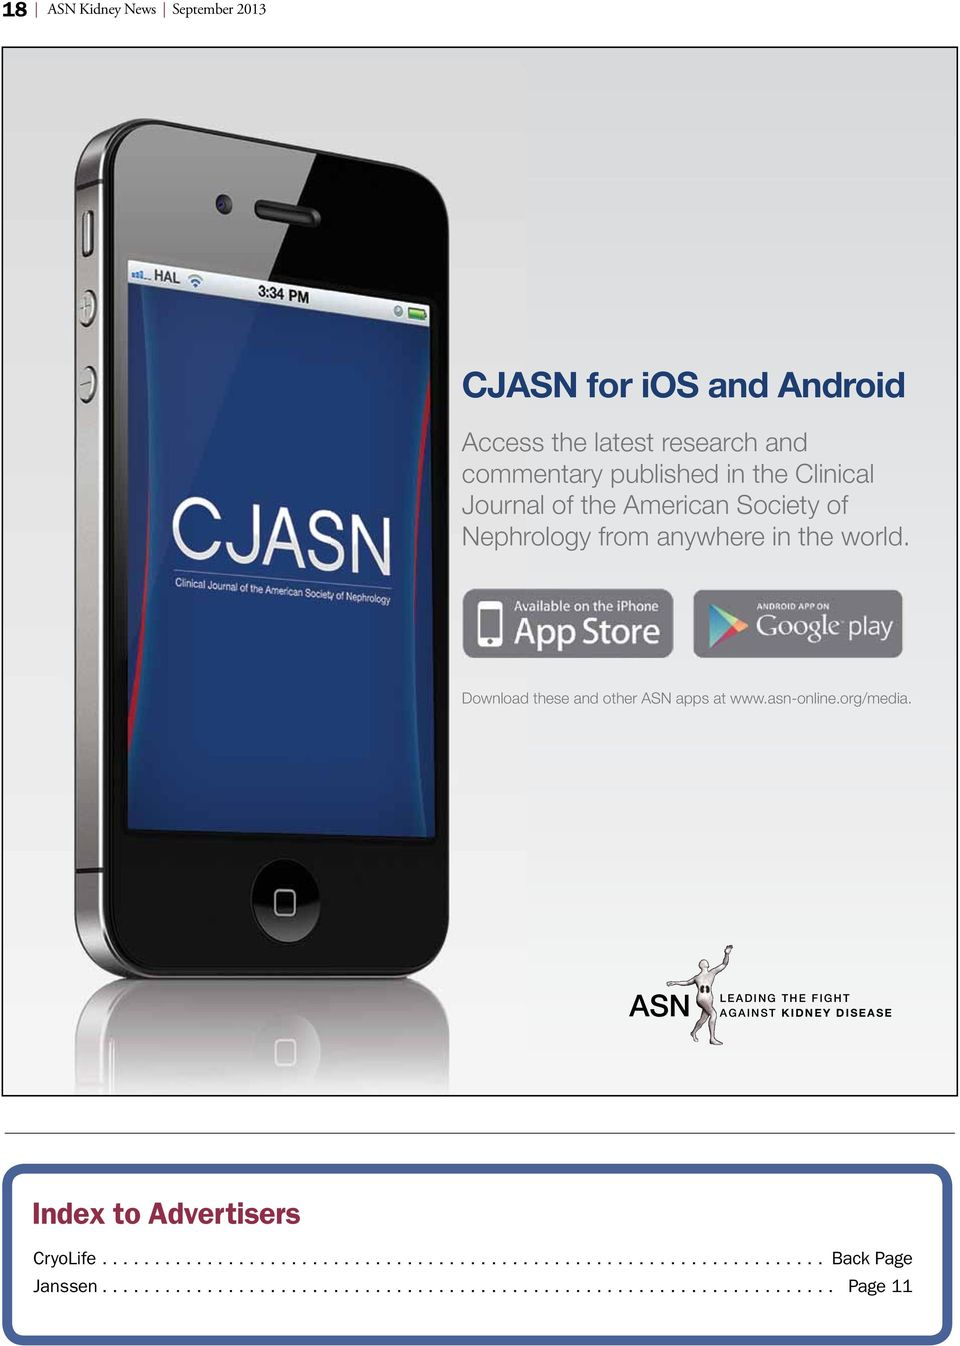 anywhere in the world. Download these and other ASN apps at www.asn-online.org/media.